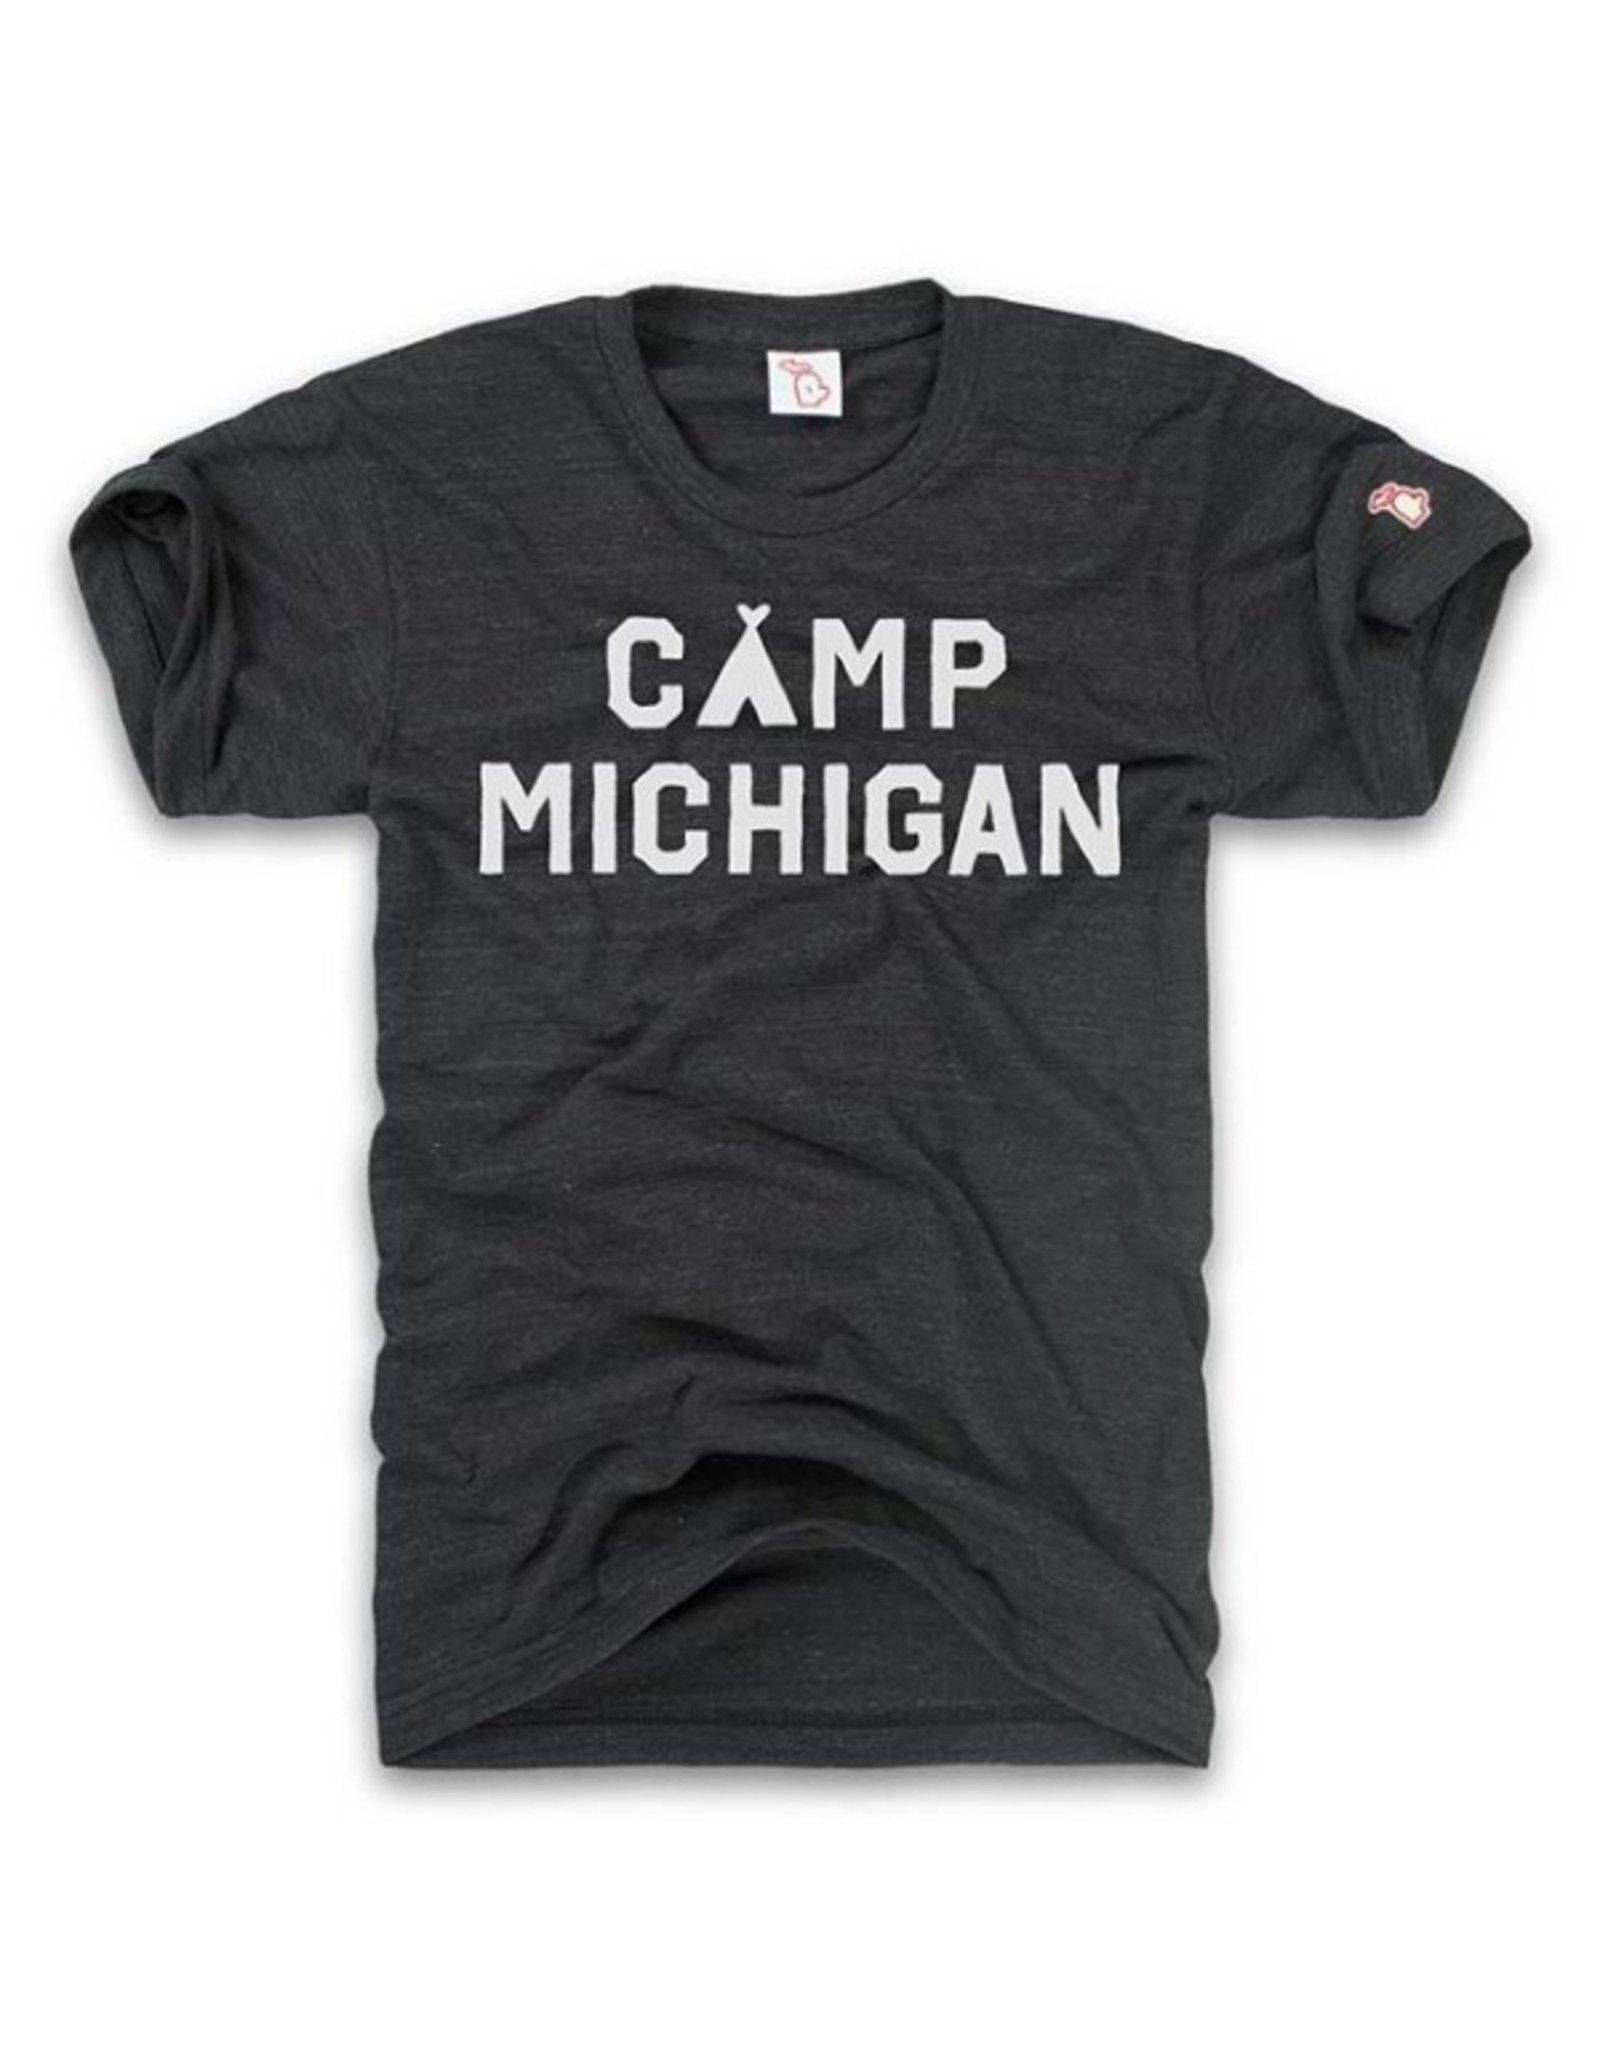 The Mitten State Camp Michigan Unisex